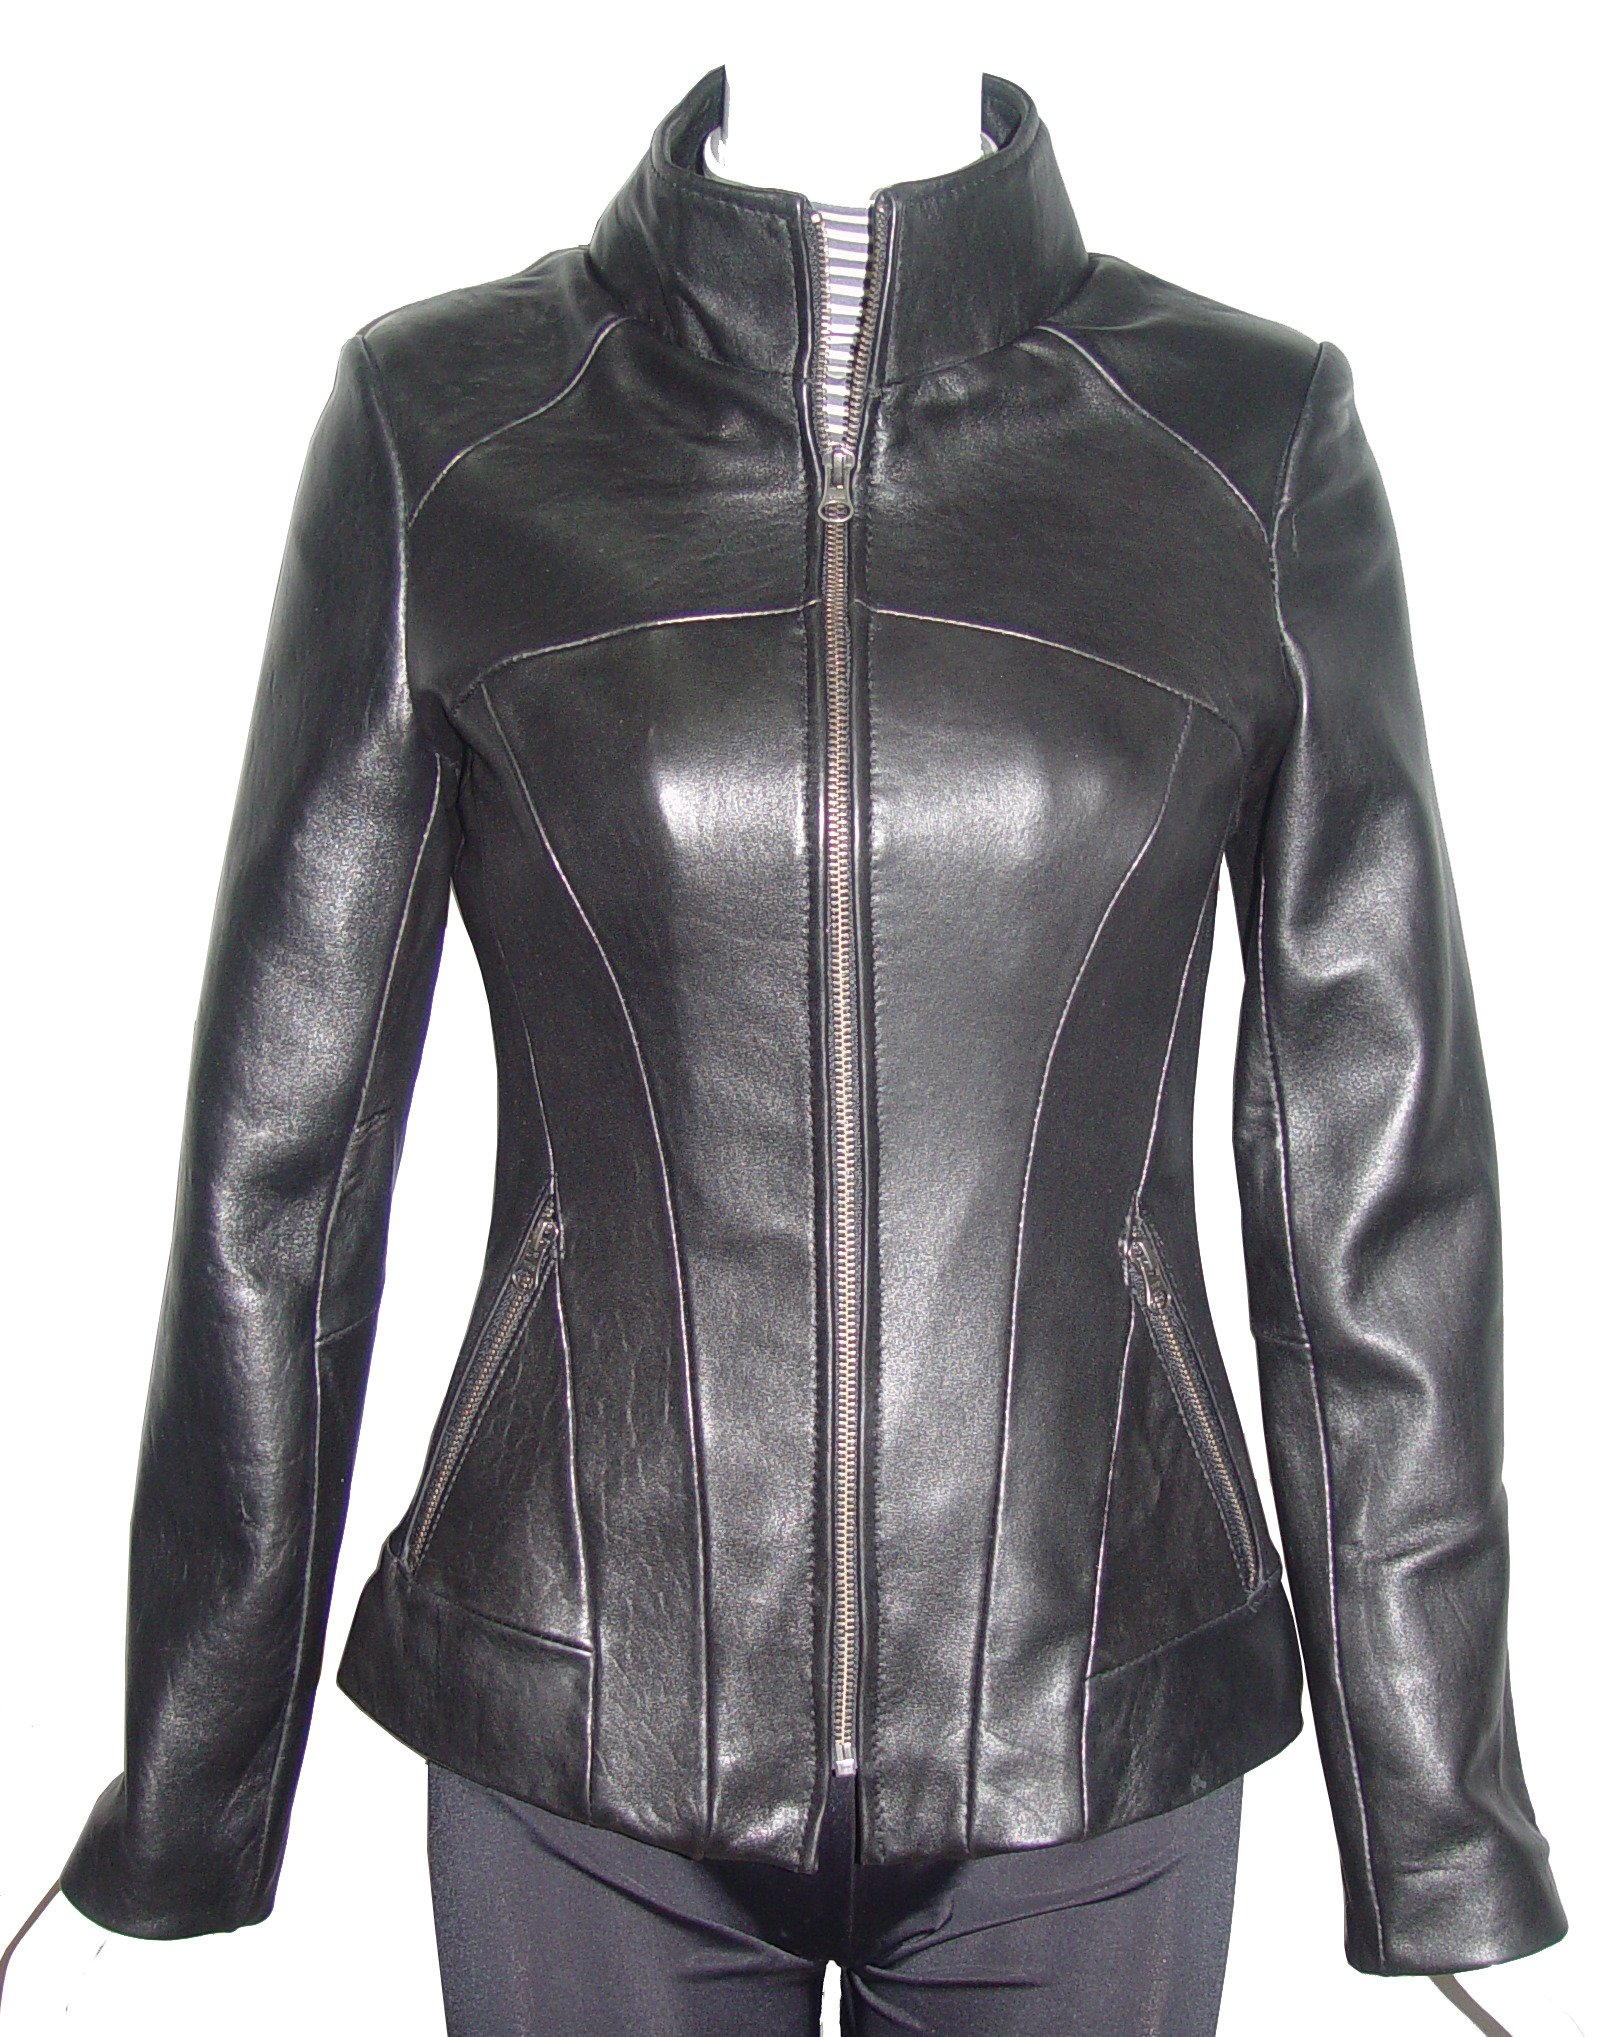 Nettailor Women PETITE & ALL SIZE Fashion 4124 Leather Motorcycle Jacket